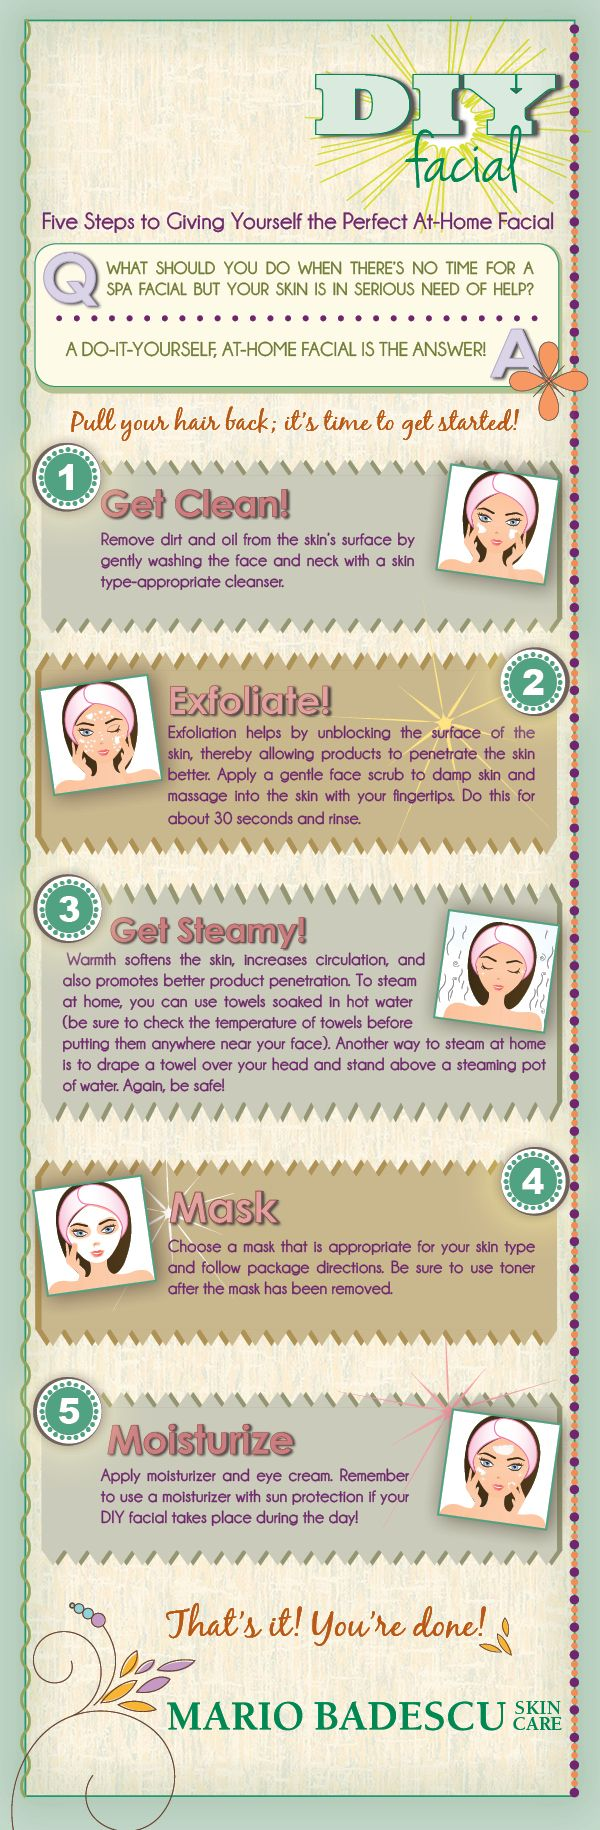 DIY Facial: Five Steps To Giving Yourself The Perfect At-Home Facial [INFOGRAPHIC] PERFECT for those COLLEGE STUDENTS!